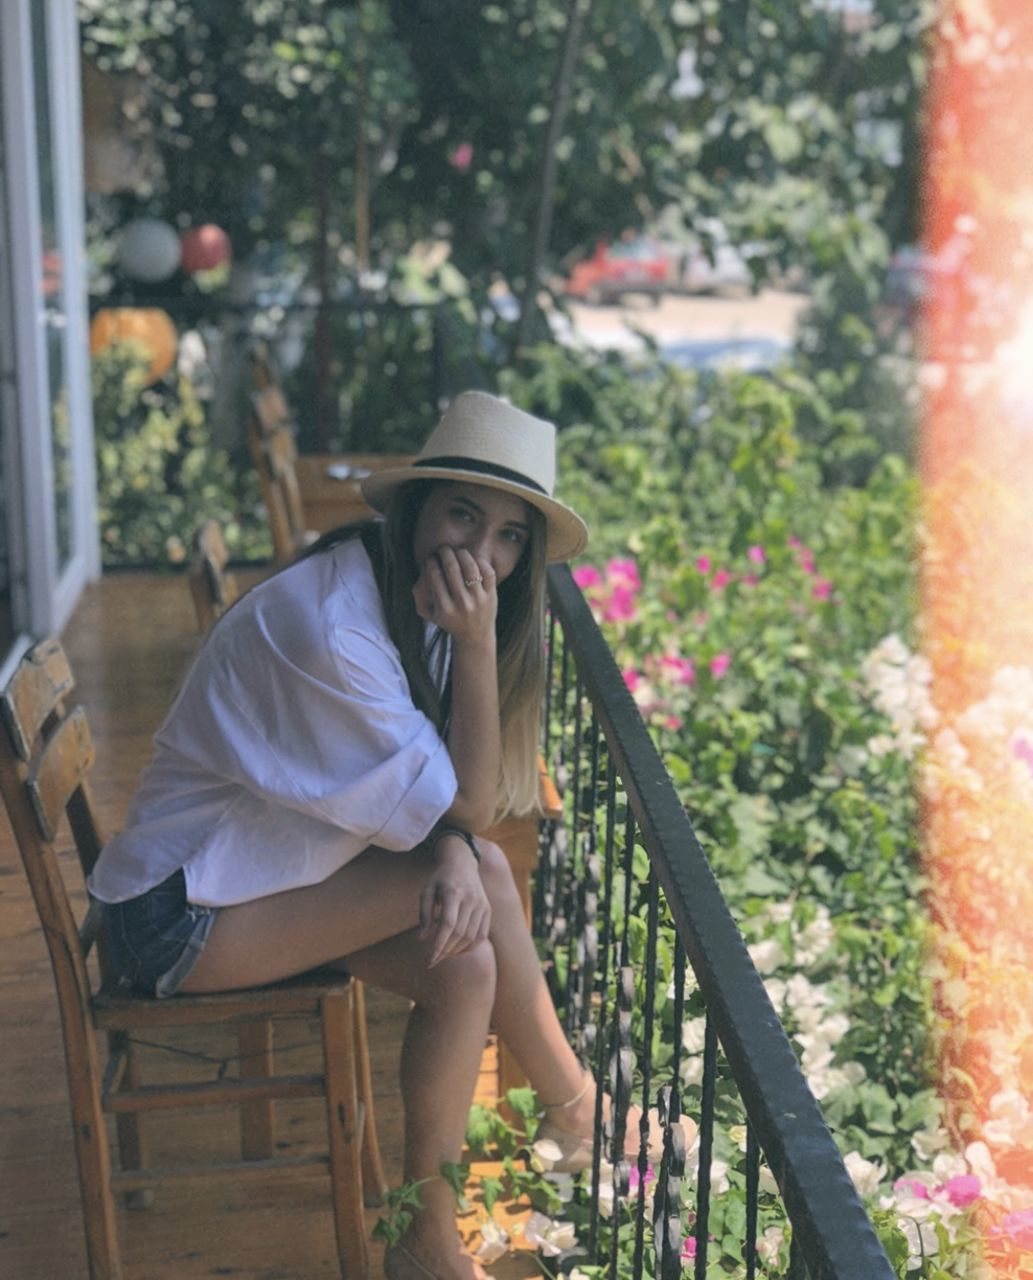 hat, plant, clothing, women, one person, day, real people, lifestyles, leisure activity, females, adult, girls, smiling, casual clothing, sun hat, young adult, young women, growth, front or back yard, outdoors